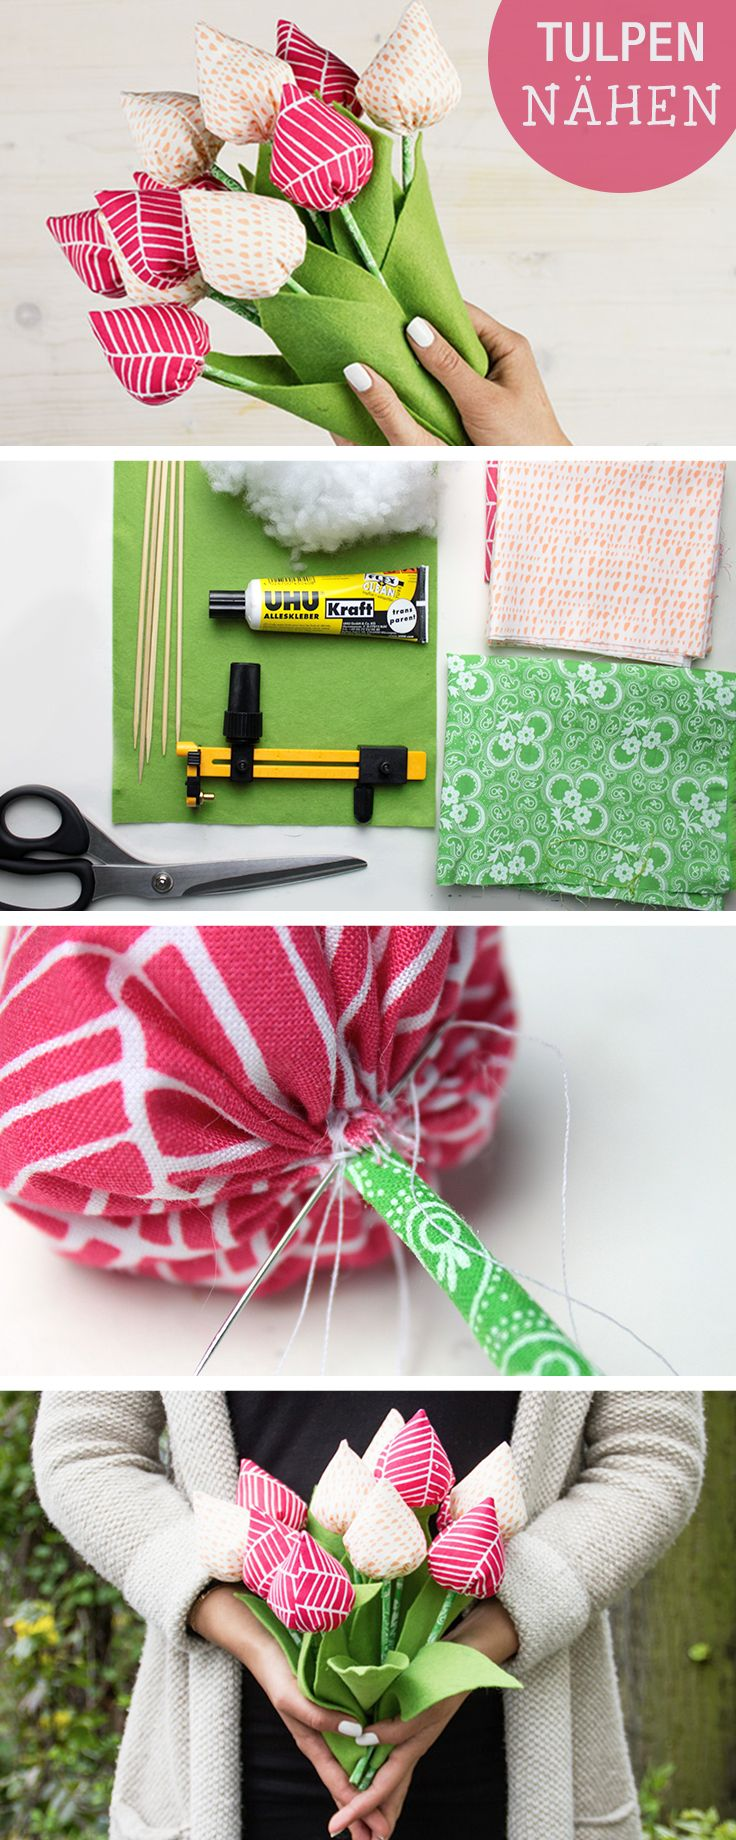 DIY-Anleitung: Tulpen aus Stoff nähen, Frühling basteln / diy tutorial for spring and mother's day: how to sew tulips via DaWanda.com